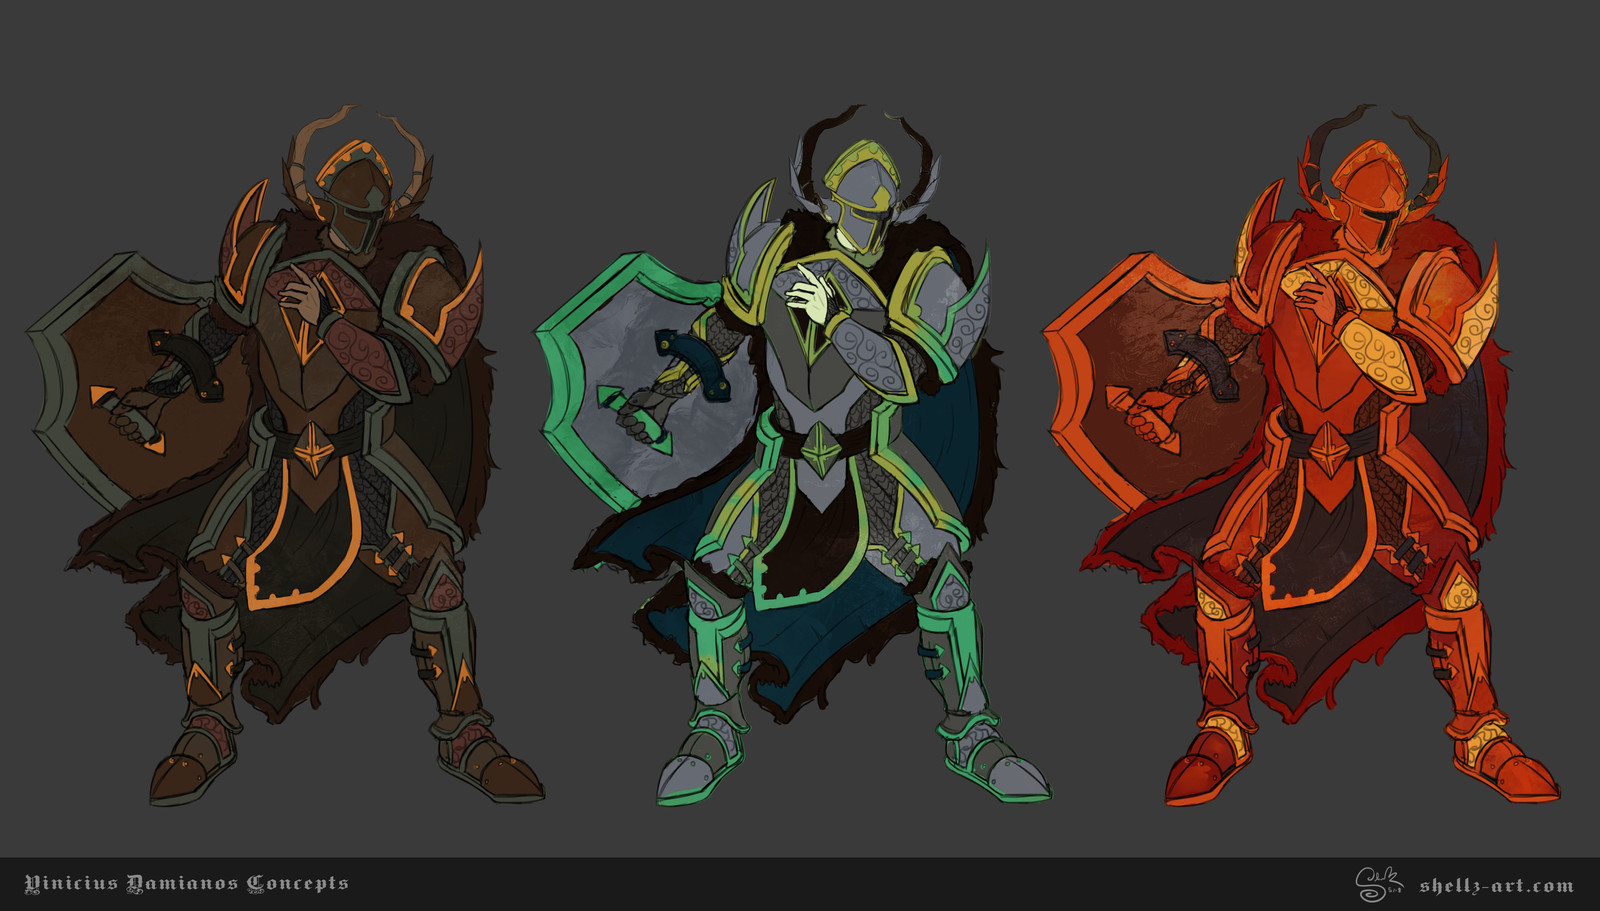 Vinicius Damianos Character Concepts